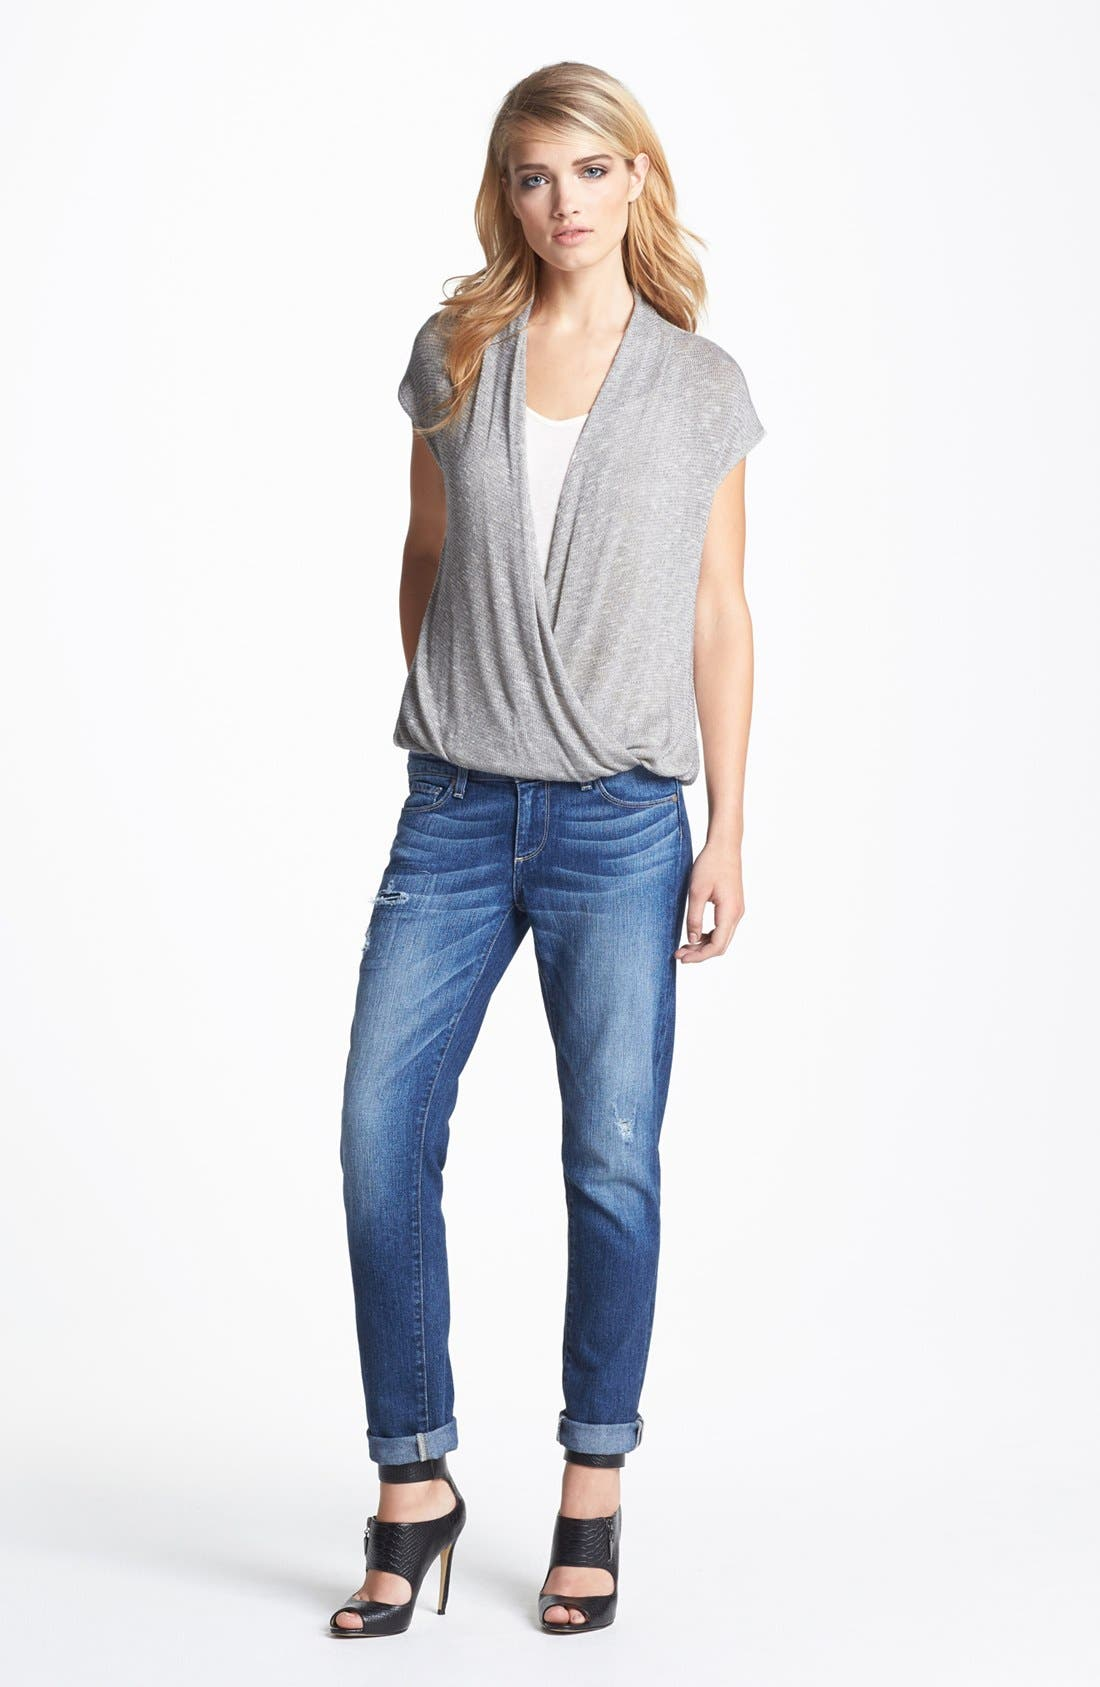 Alternate Image 1 Selected - Ella Moss Top & Paige Denim Jeans